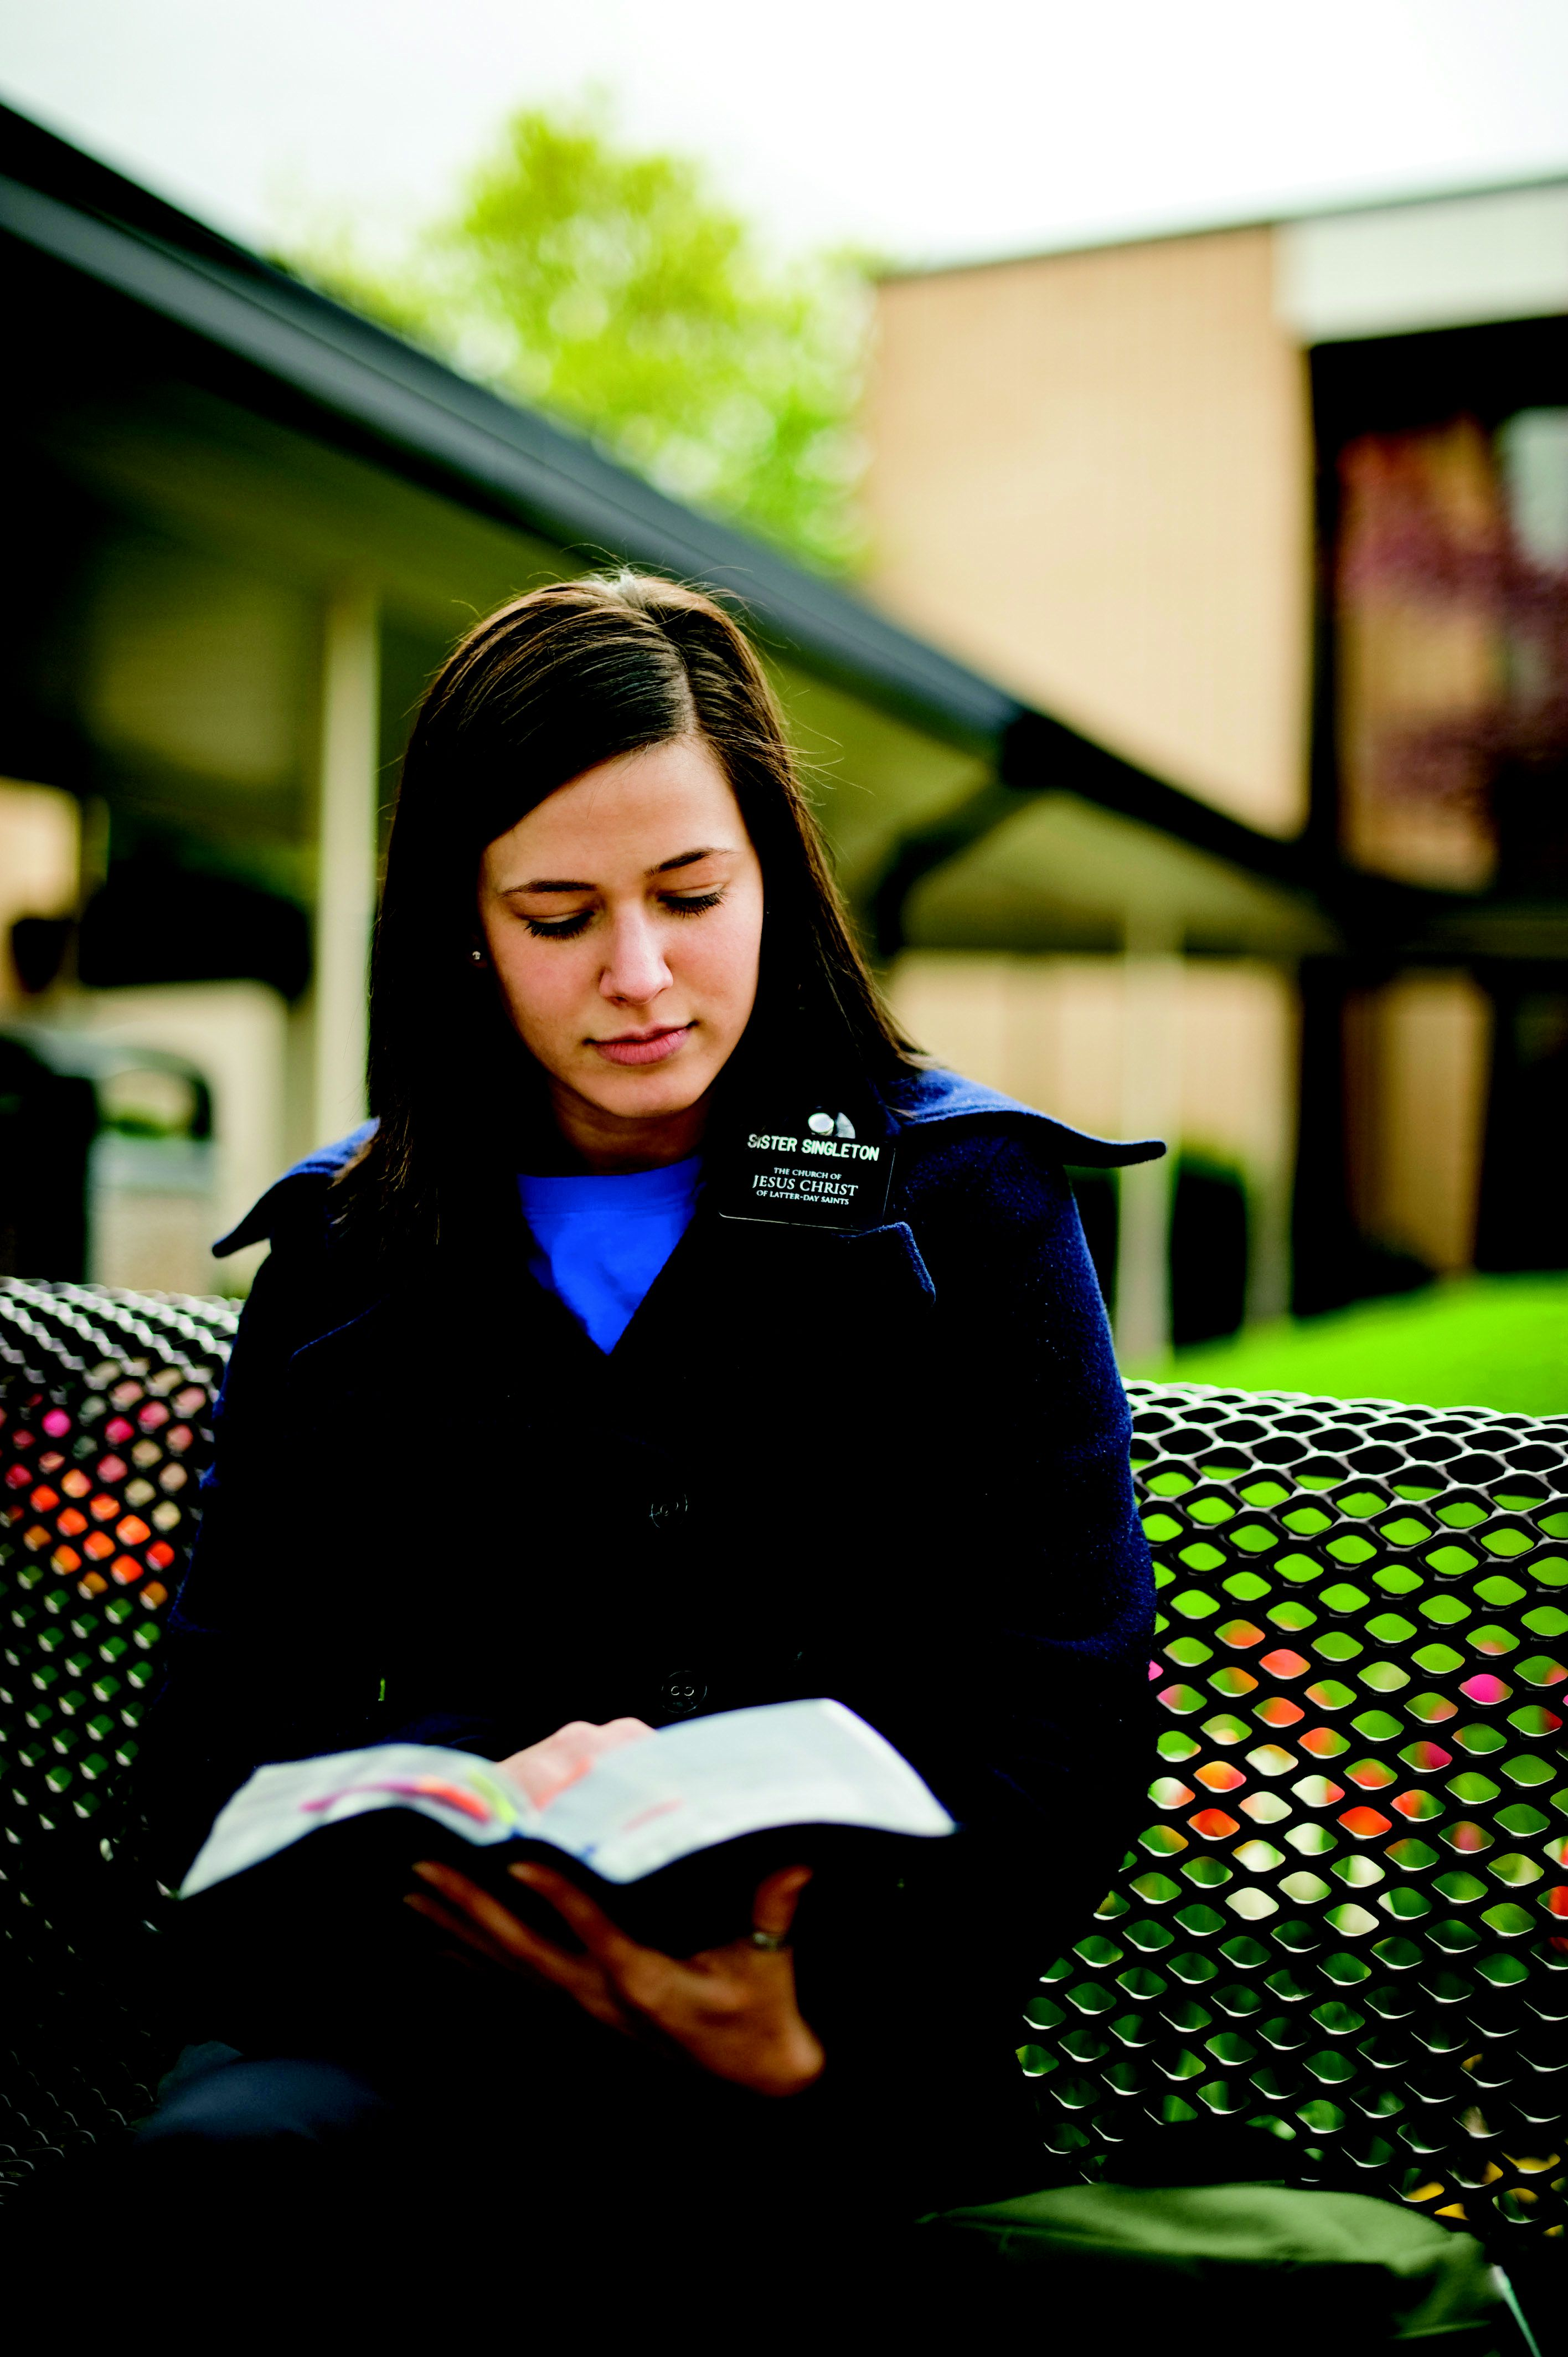 Sister Missionary at the MTC studying scripture